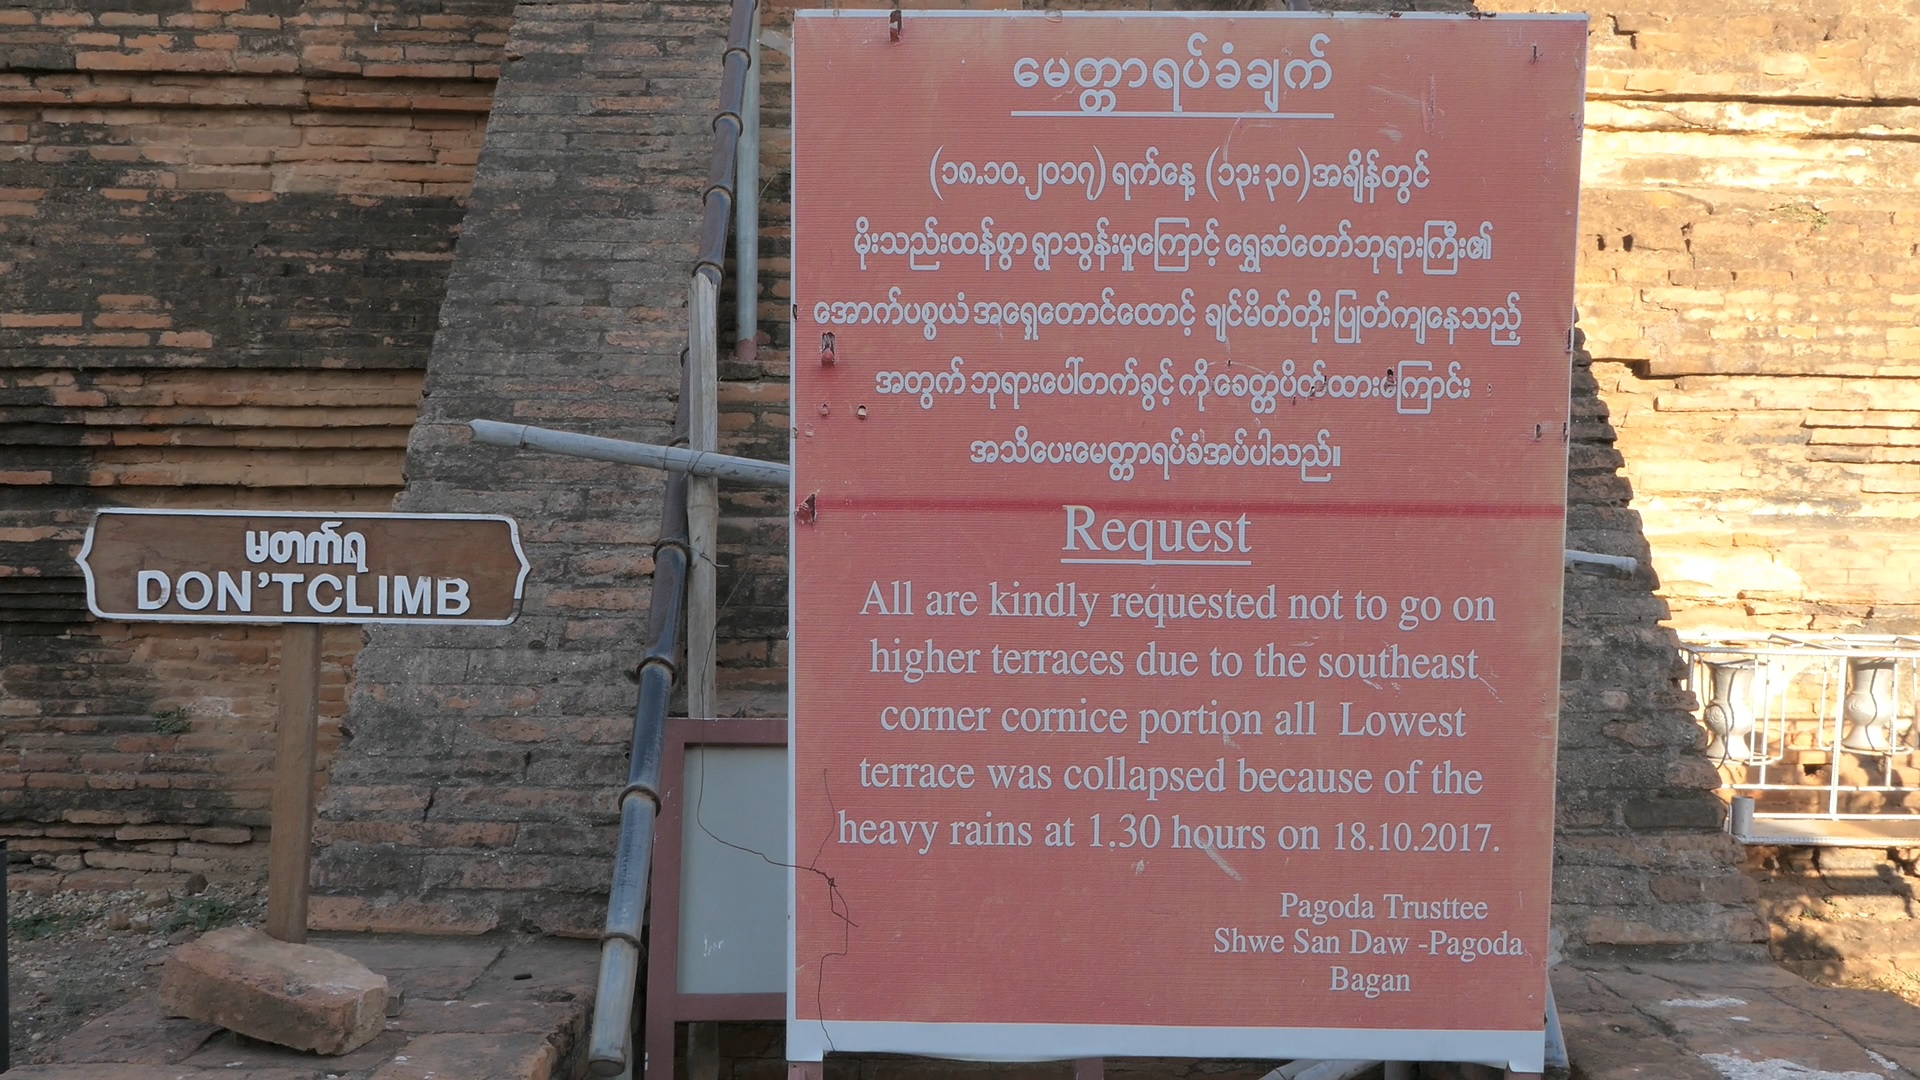 Climbing at the Shwesandaw Pagoda in Bagan is banned (since 2017).